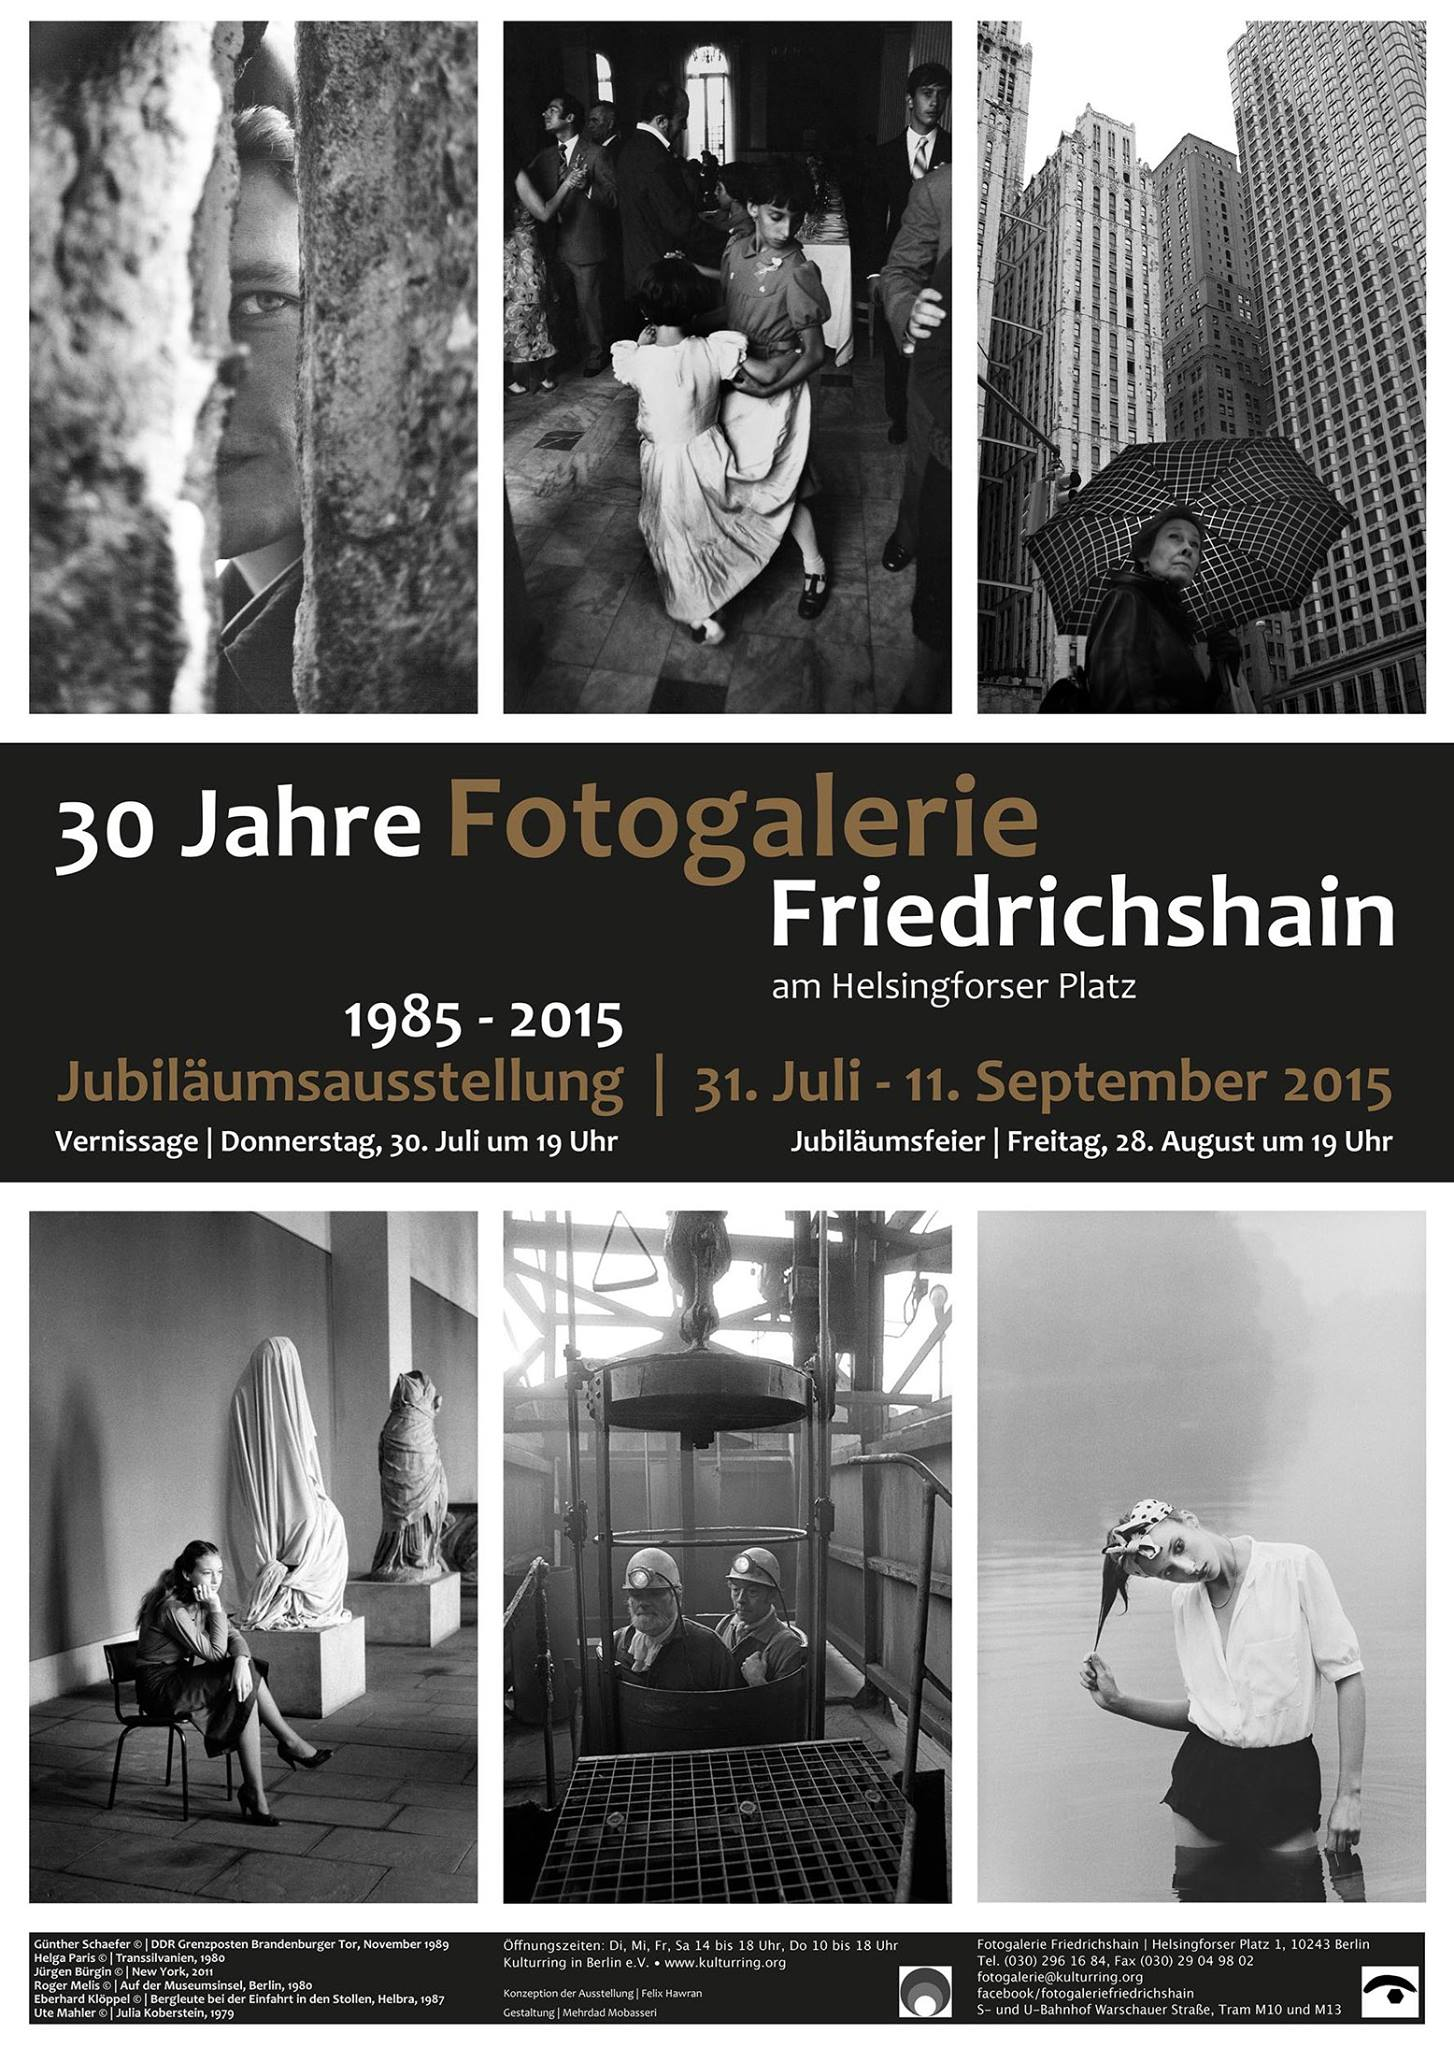 © Fotogalerie Friedrichshain / Respective Artists